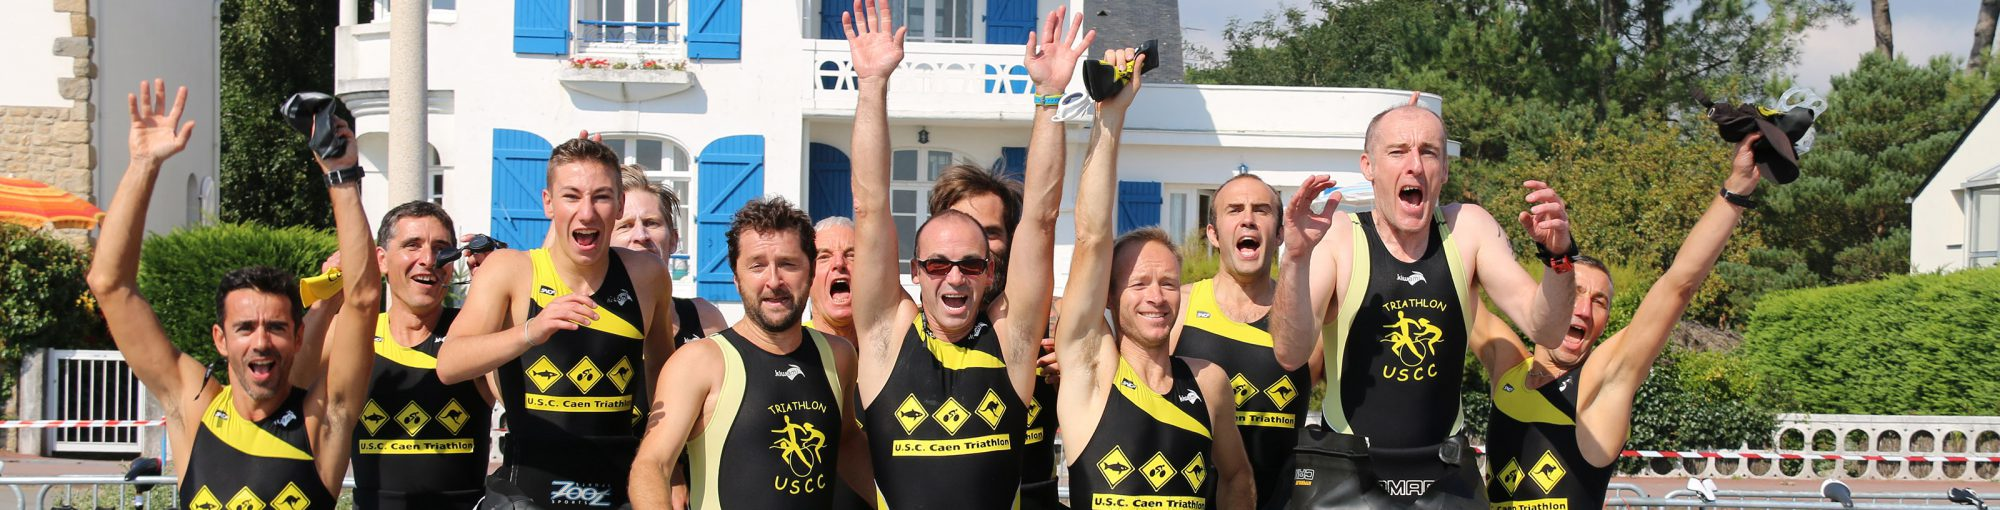 USCCaen Triathlon